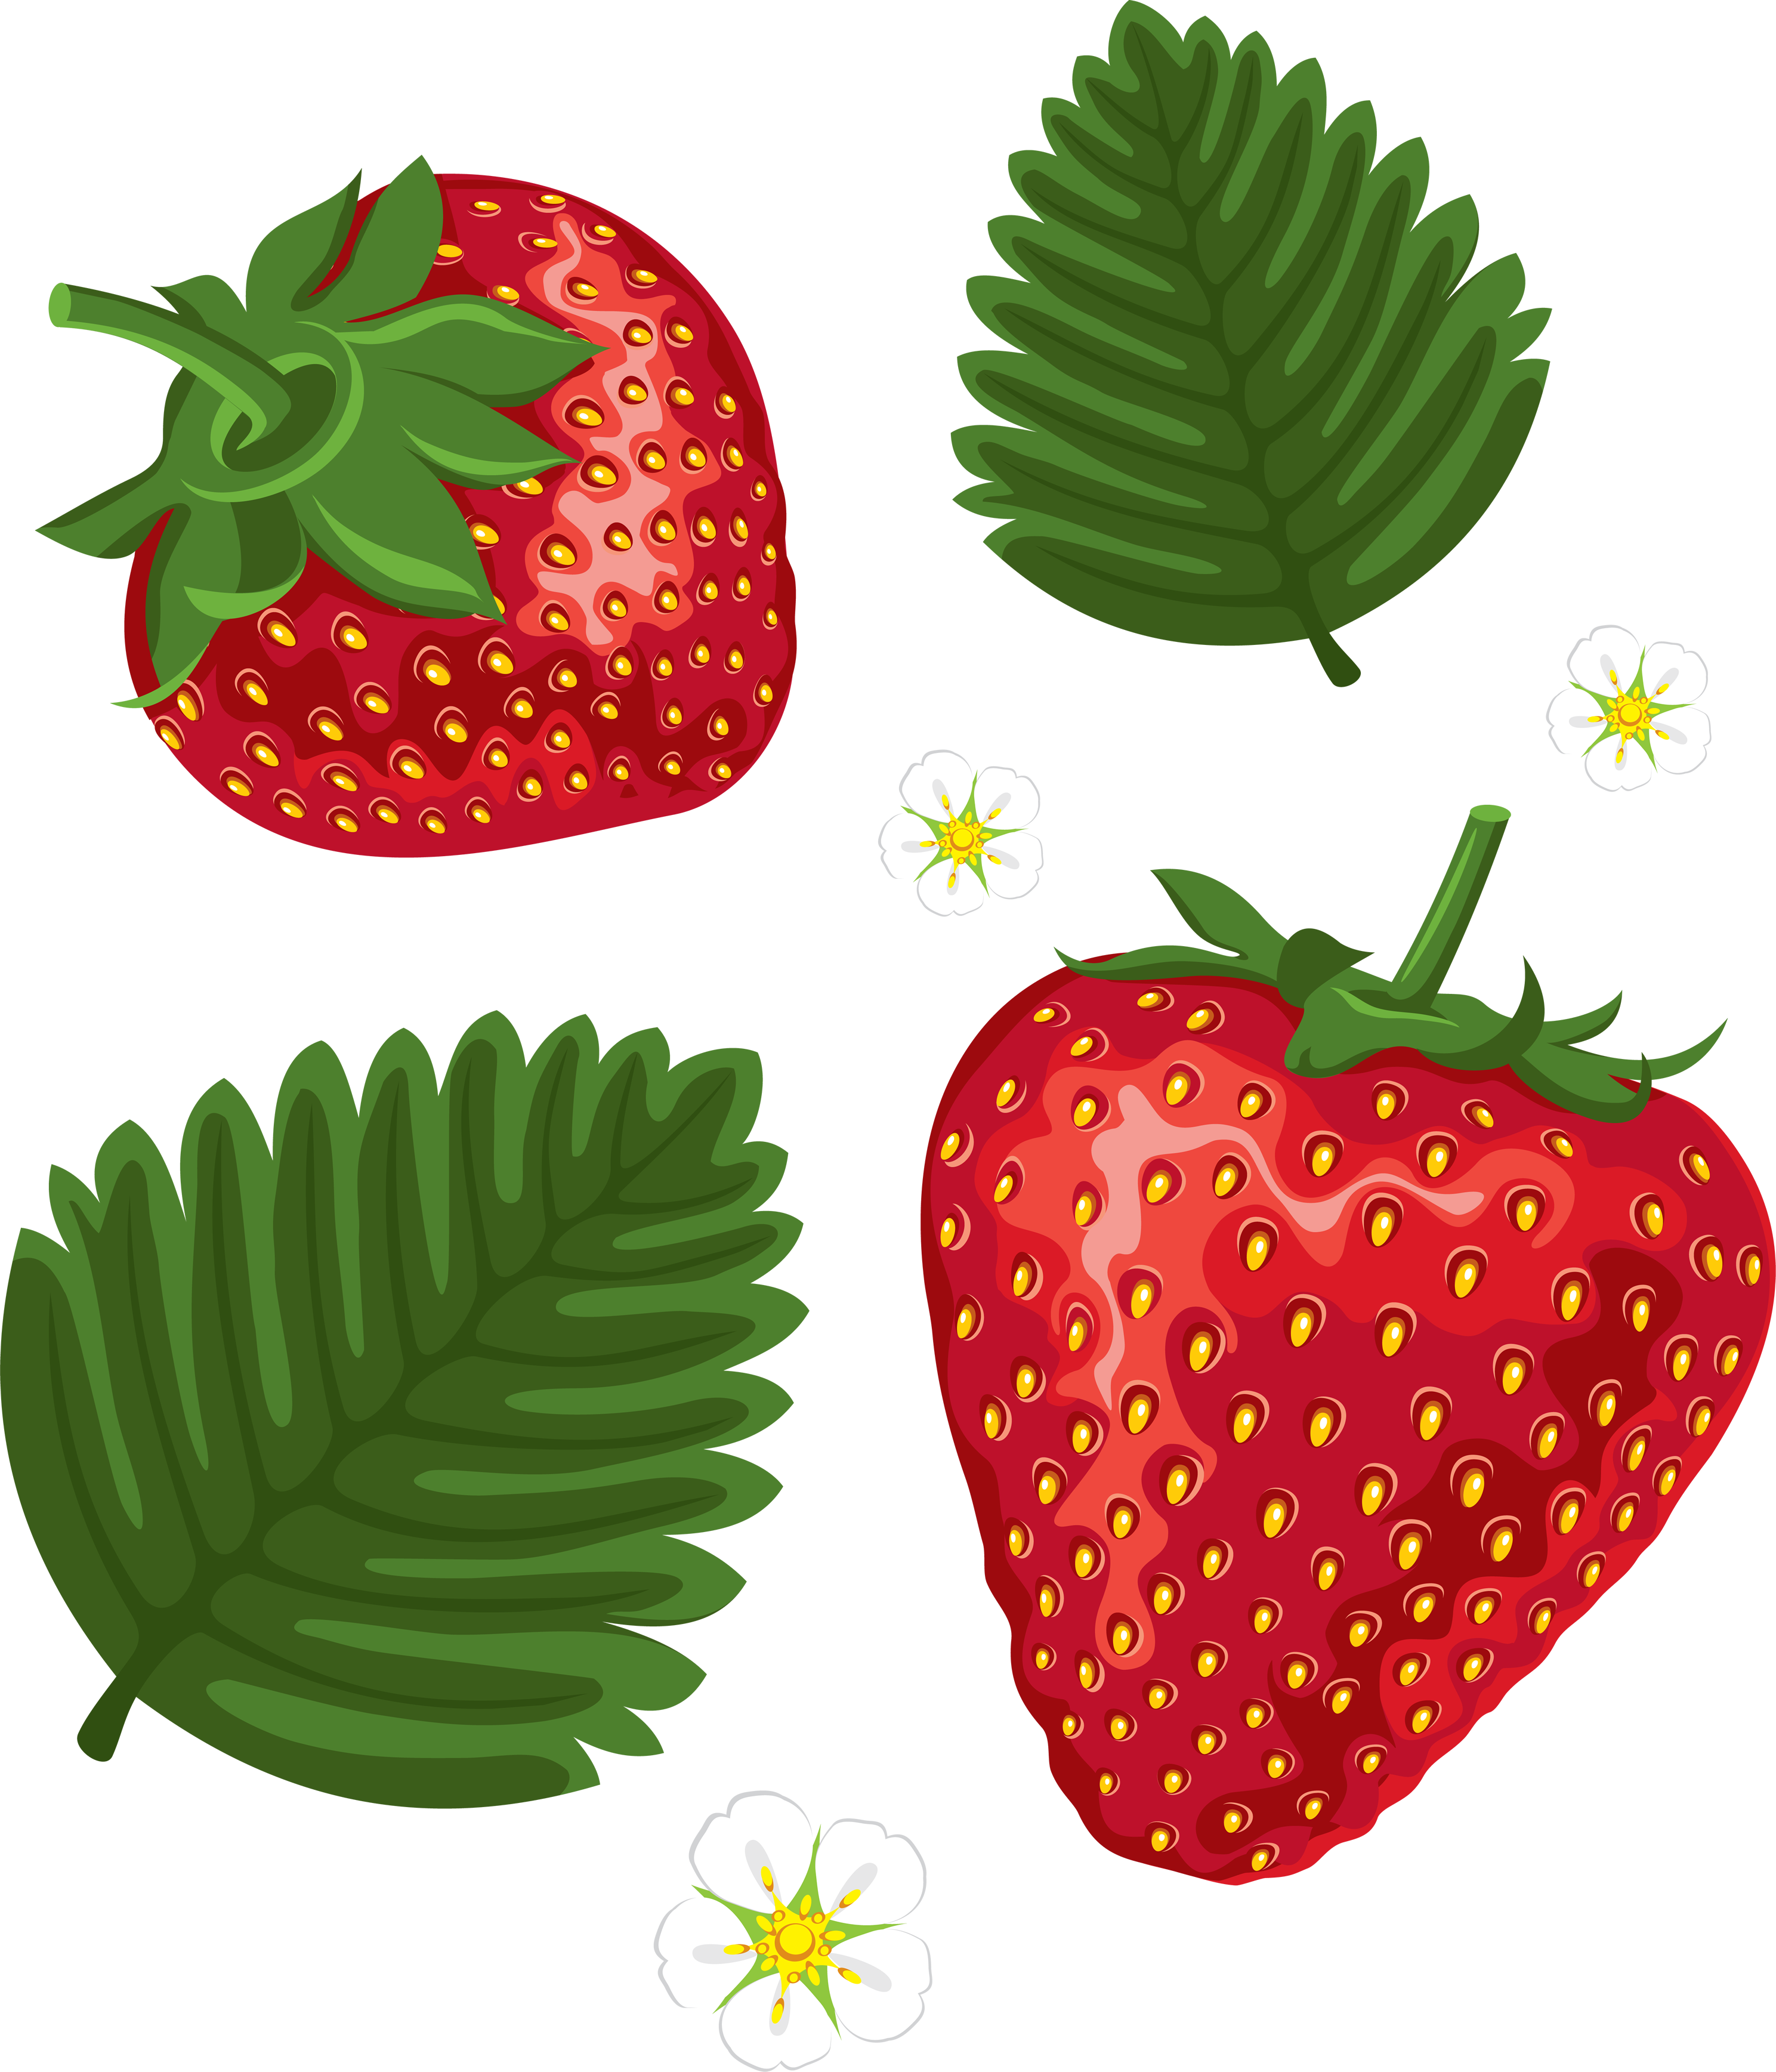 Strawberry png image purepng. Strawberries clipart strawbery